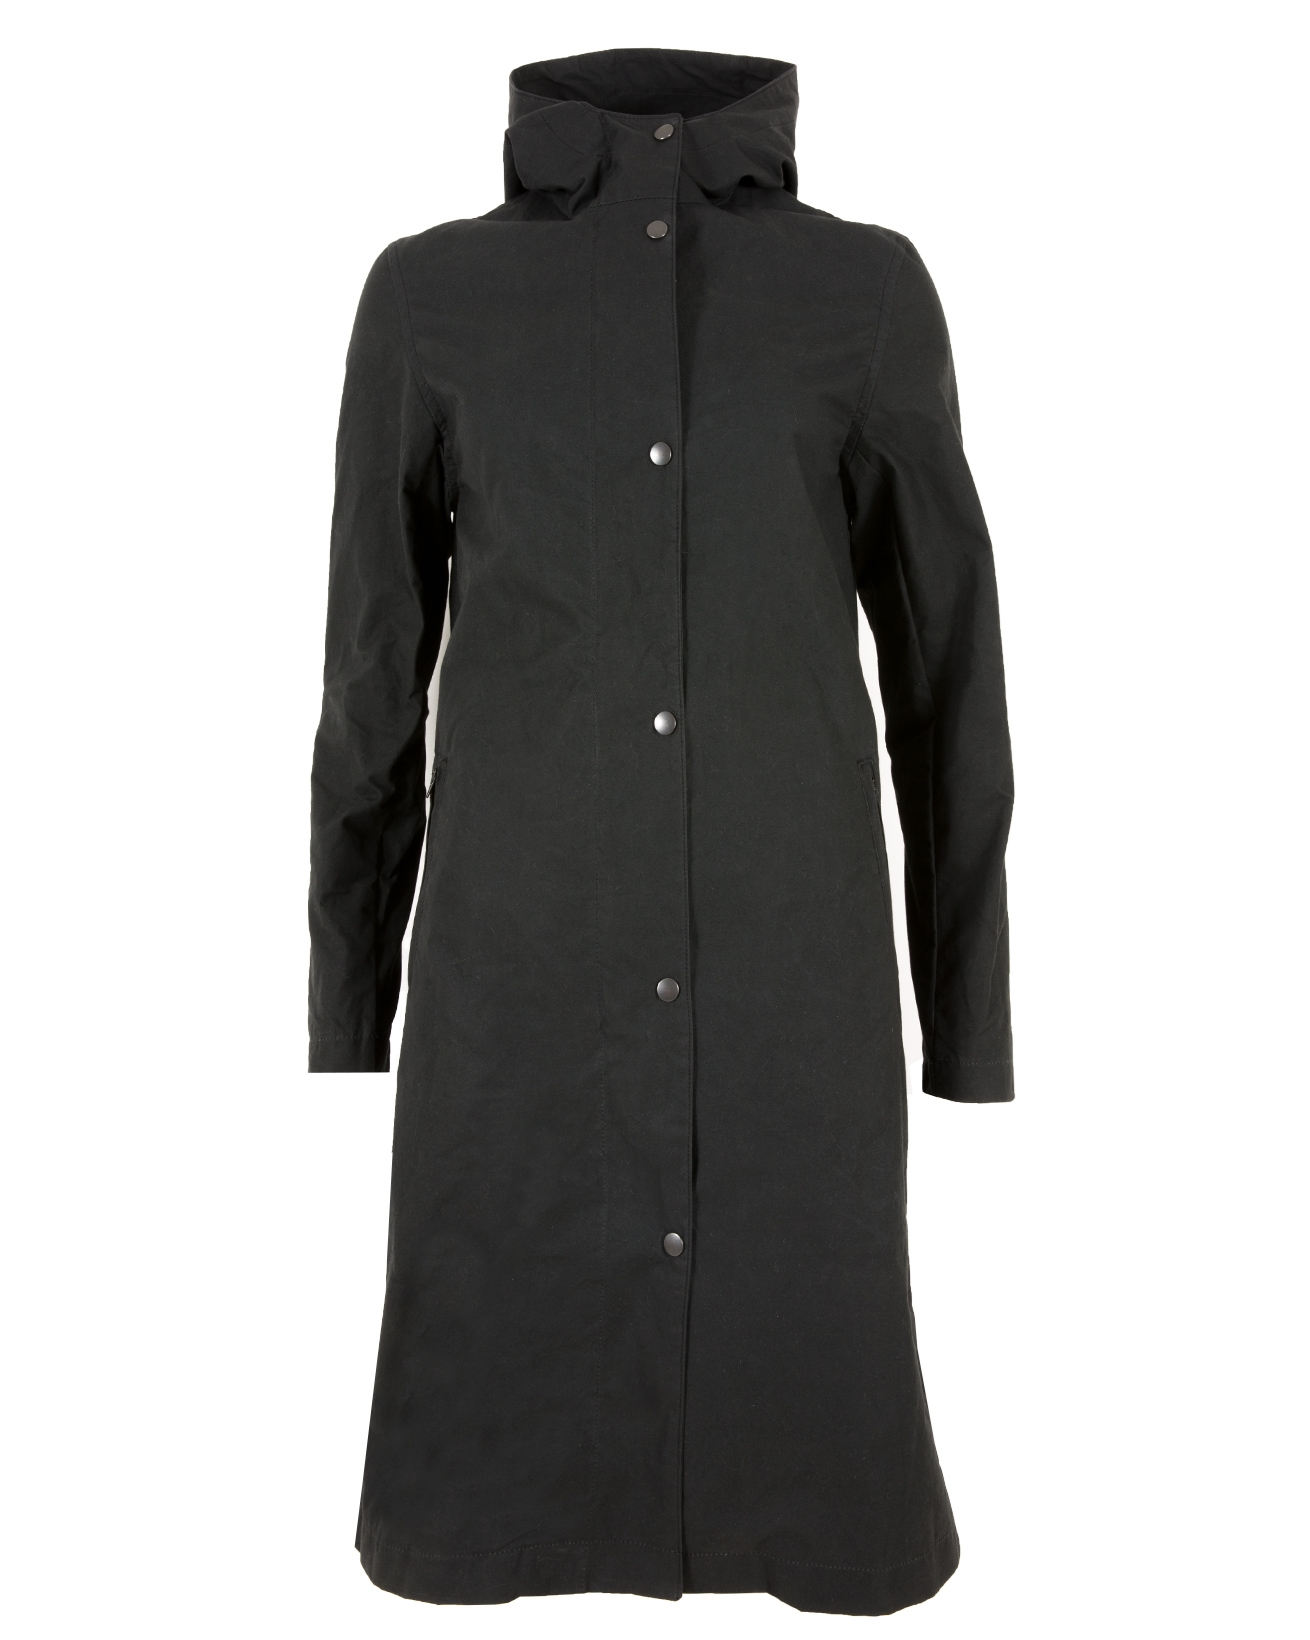 7507-long wax rain coat-black-front.jpg